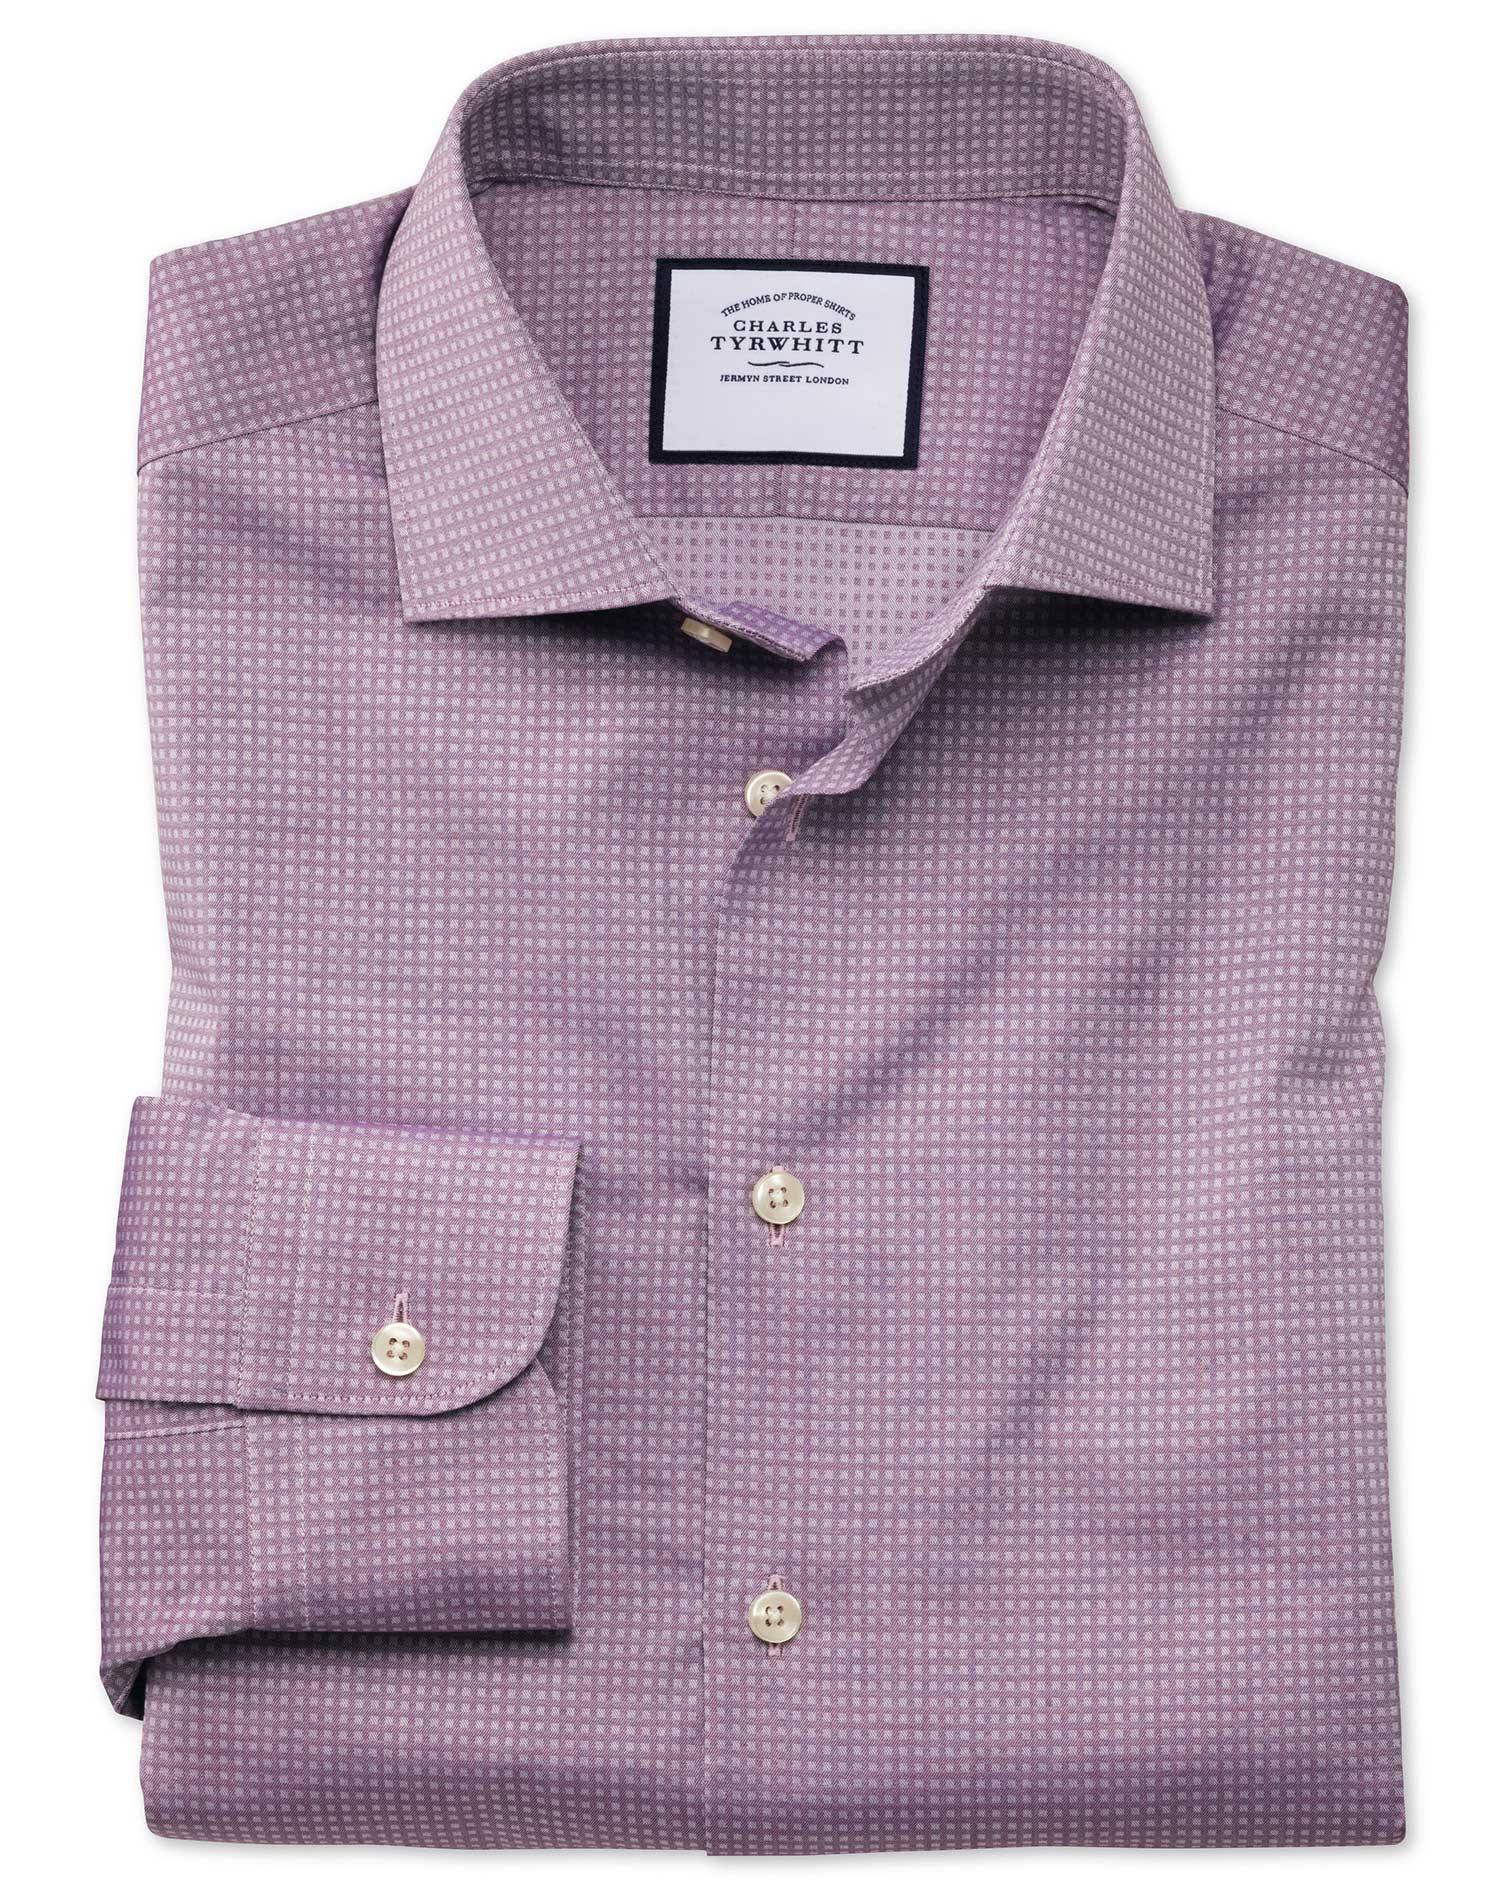 Slim Fit Business Casual Purple Square Texture Egyptian Cotton Formal Shirt Single Cuff Size 14.5/33